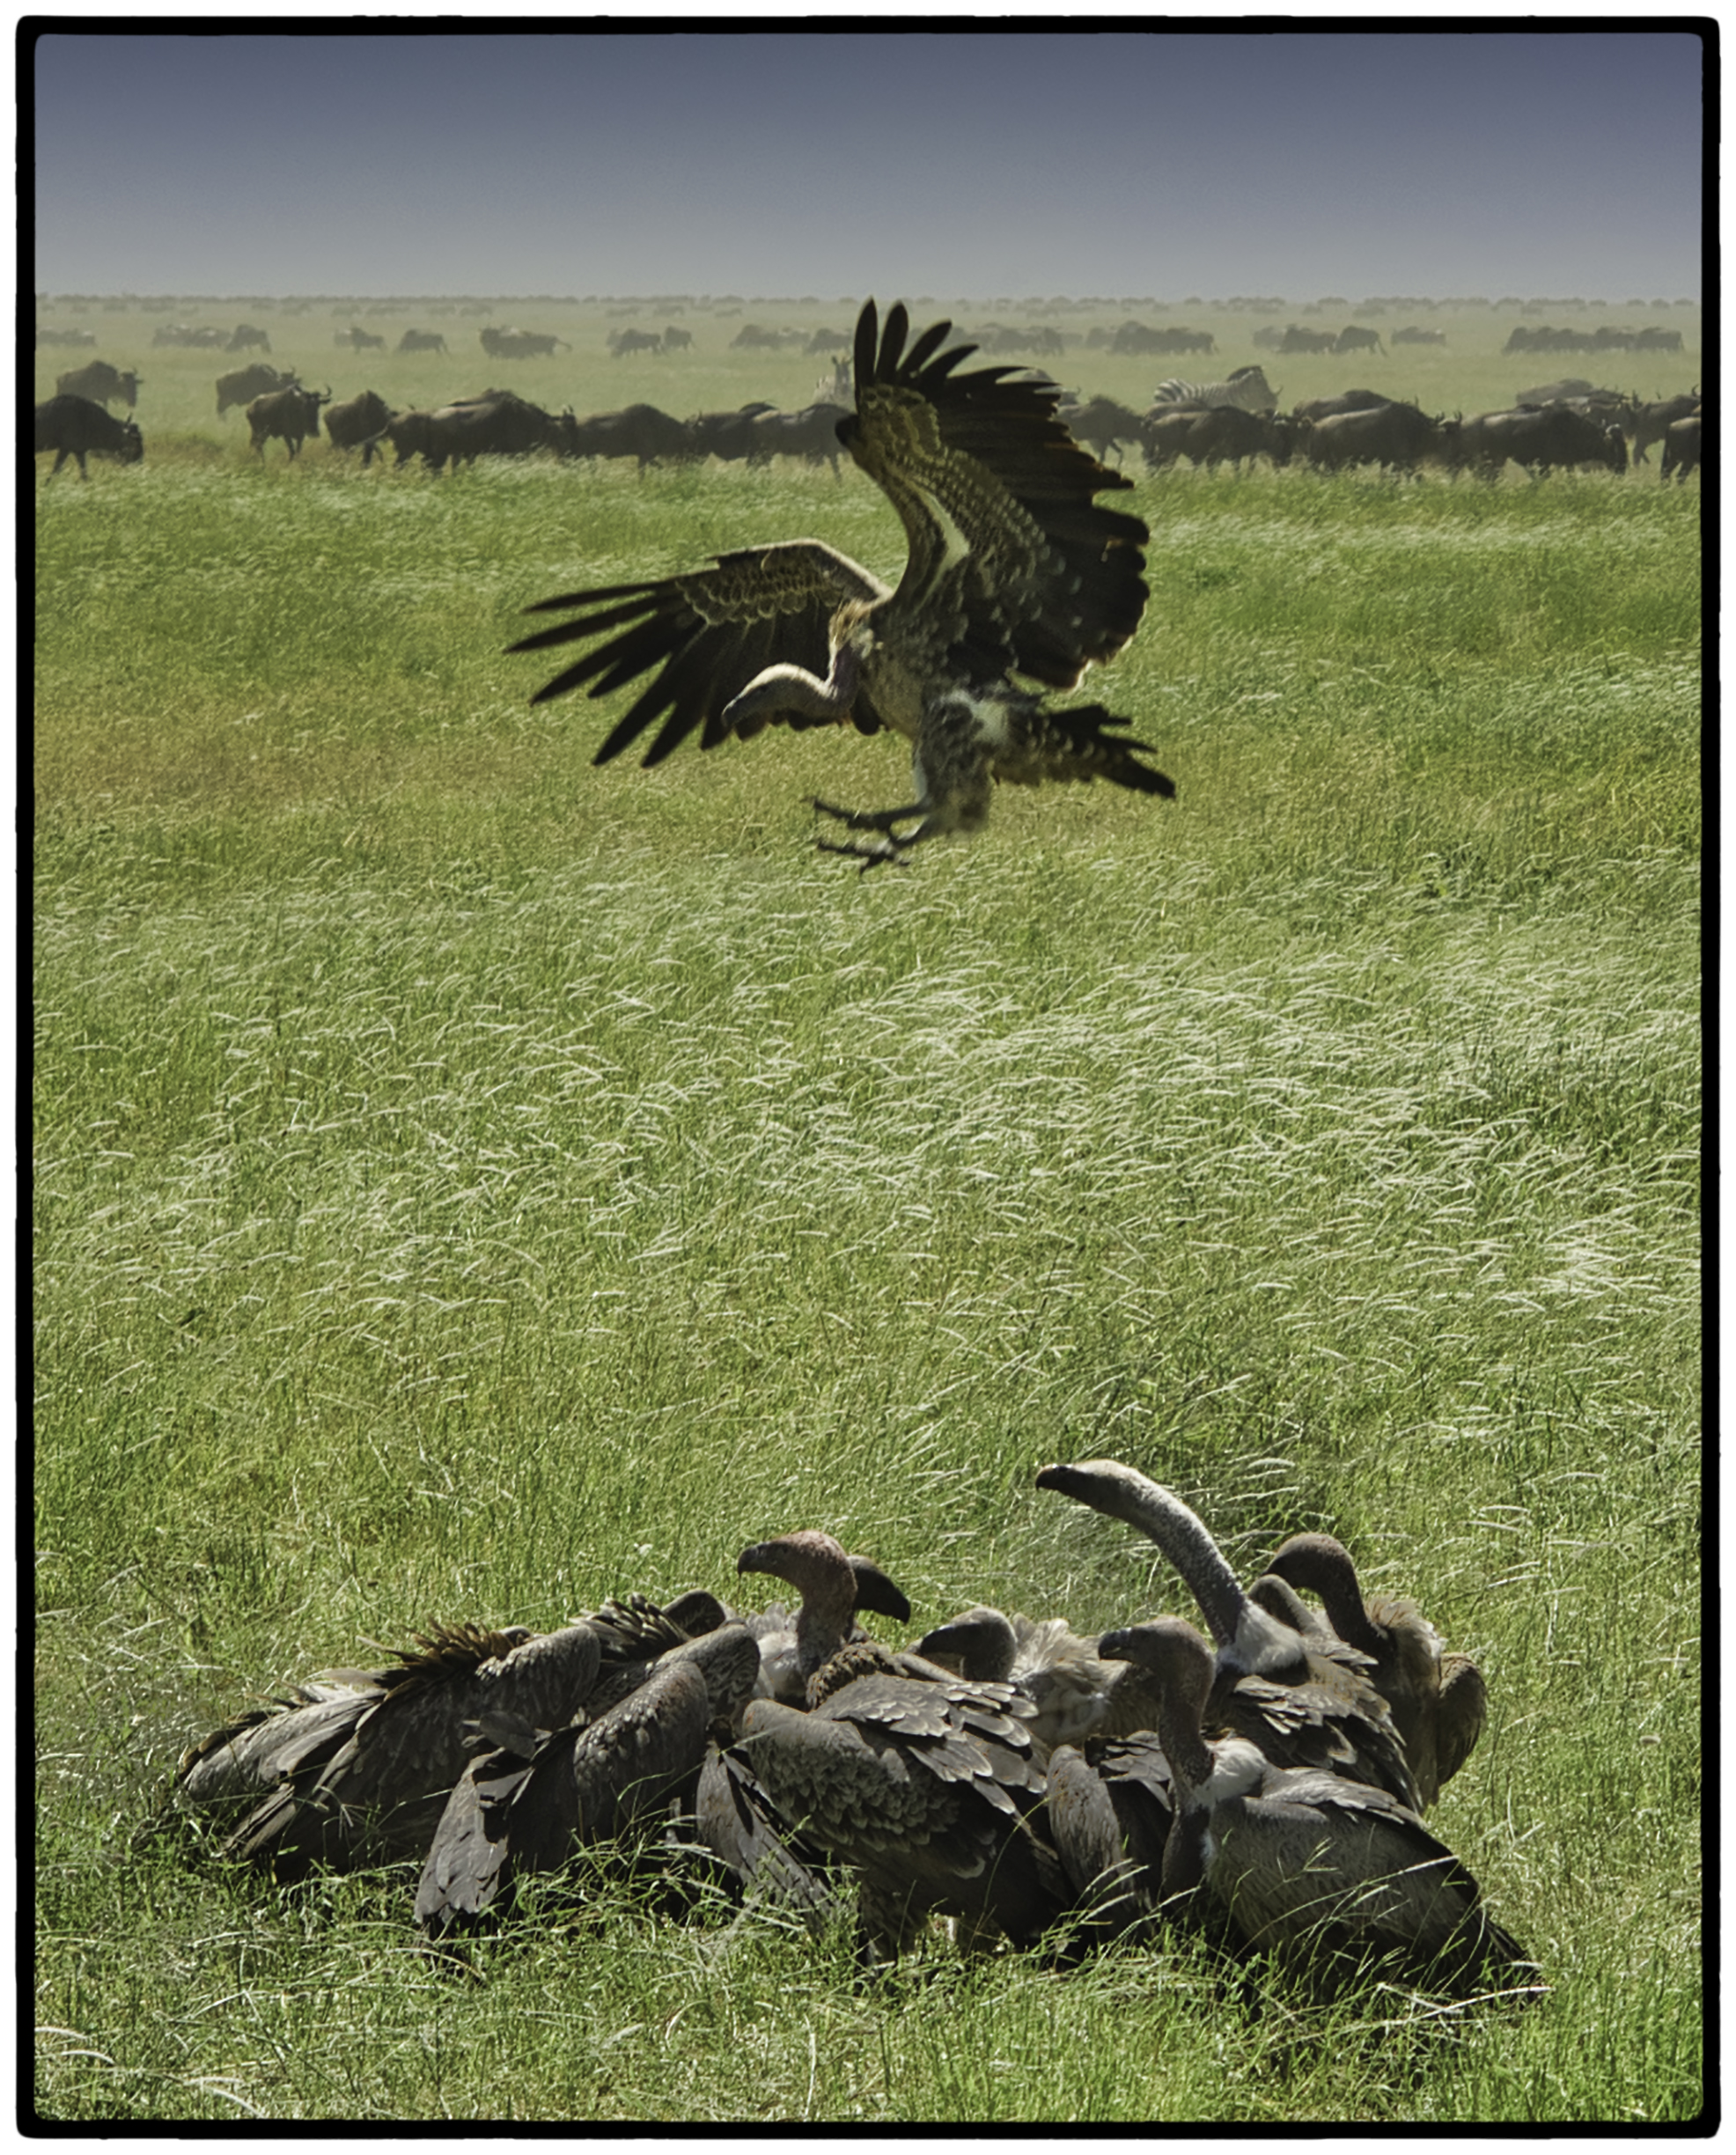 Vultures and Wildesbeests, Tanzania, Africa